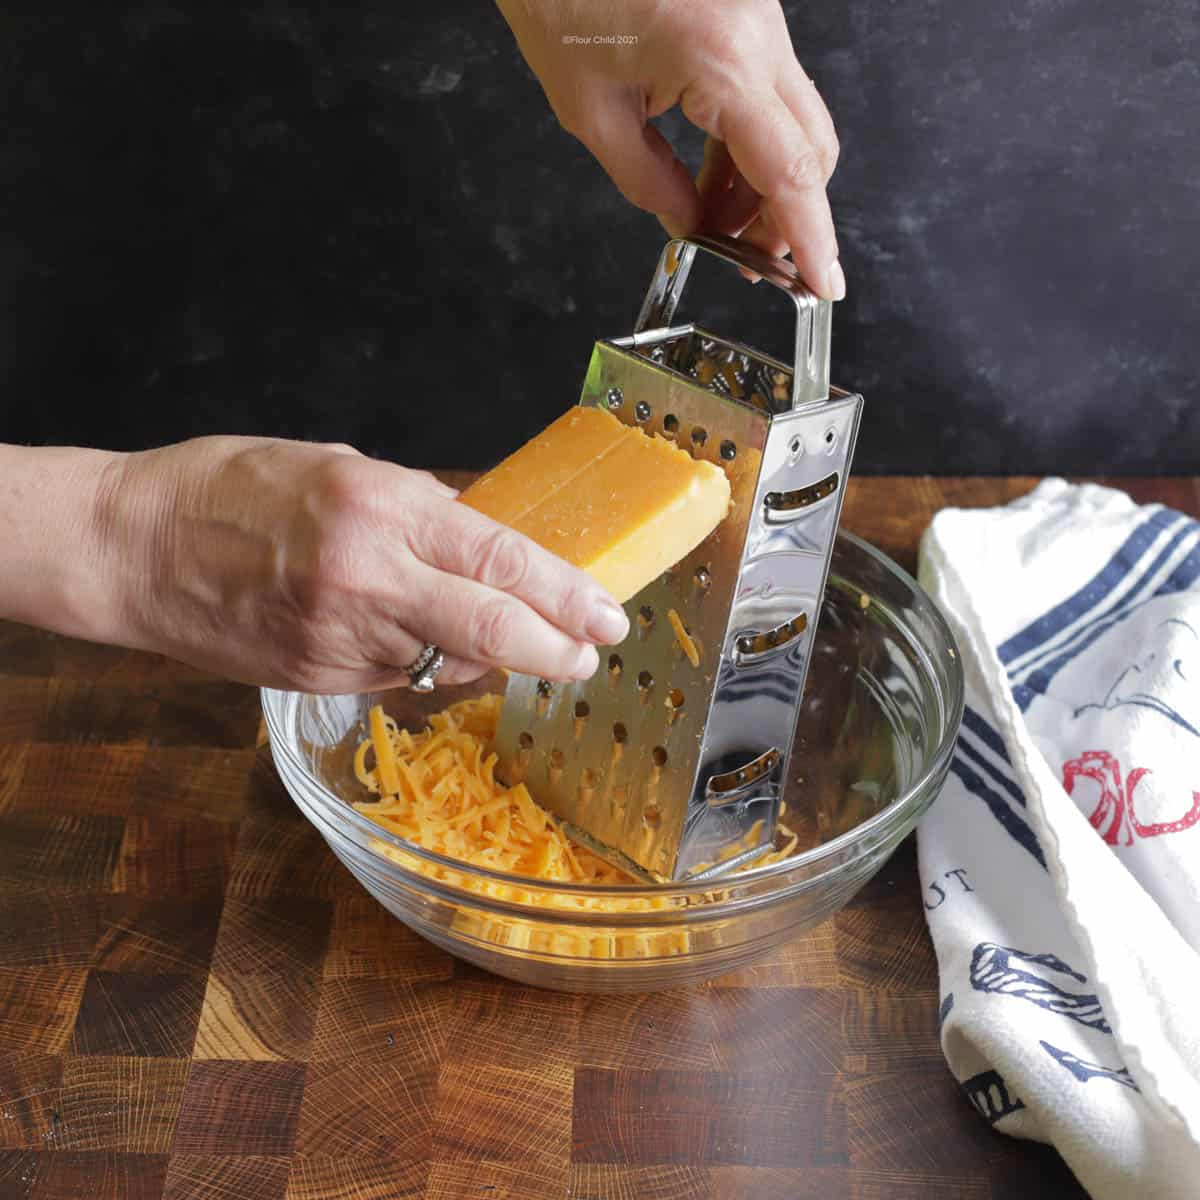 Grating cheese with a box grater